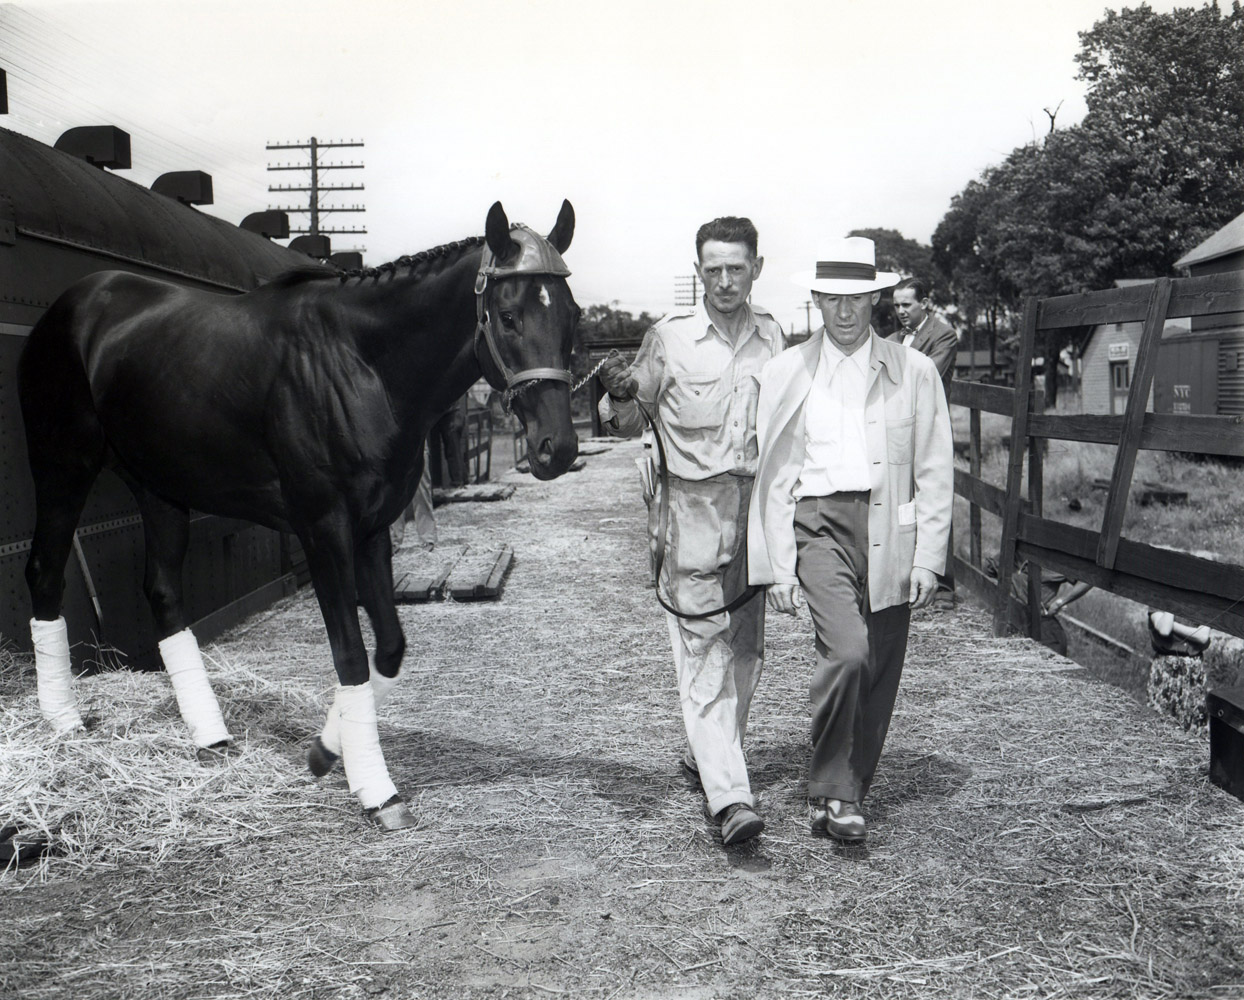 Noor arriving in Saratoga in 1950 with trainer Burley Parke (Keeneland Library Morgan Collection/Museum Collection)